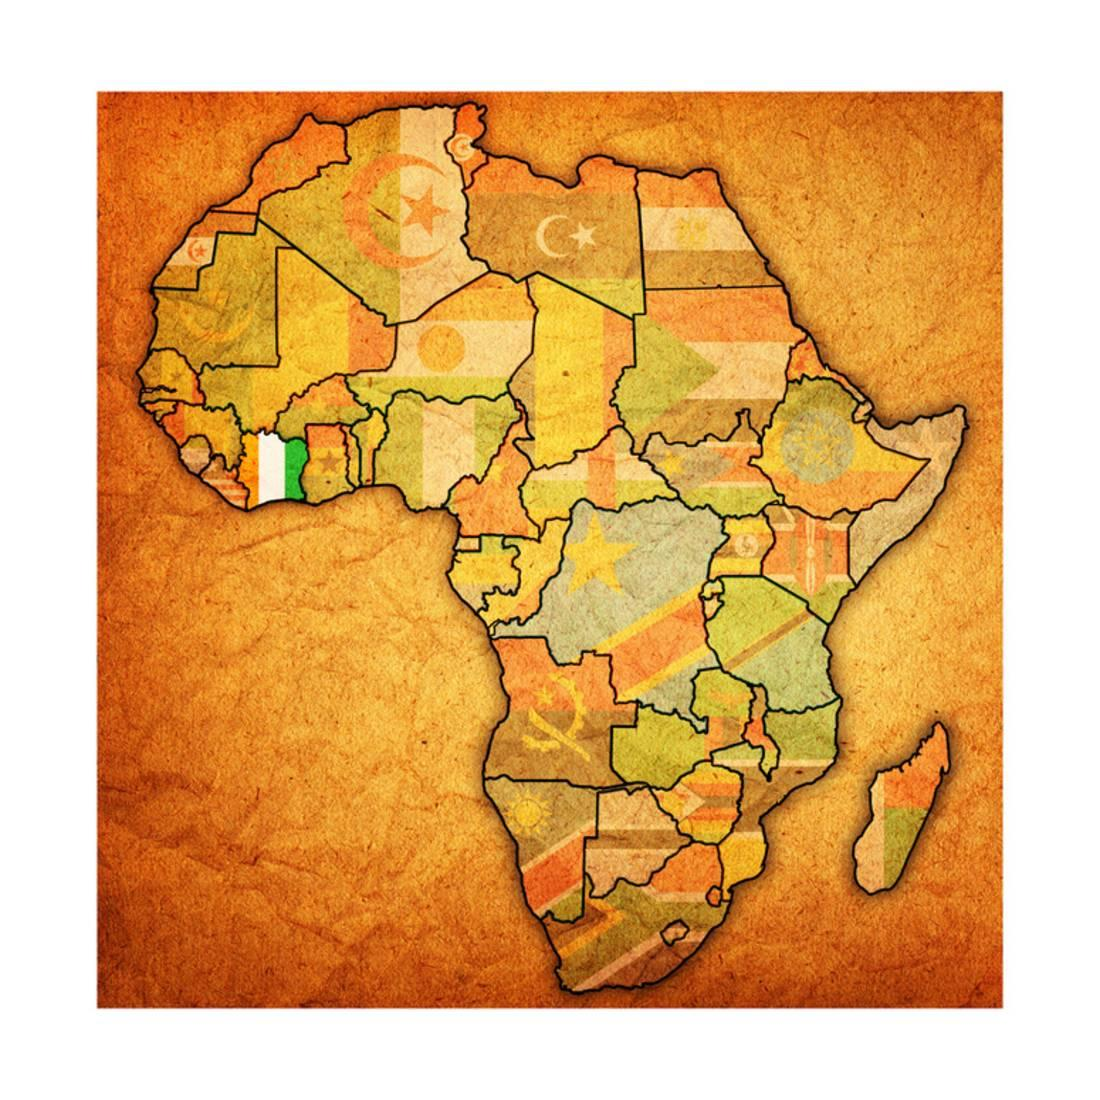 Ivory Coast on Actual Map of Africa Print By michal812